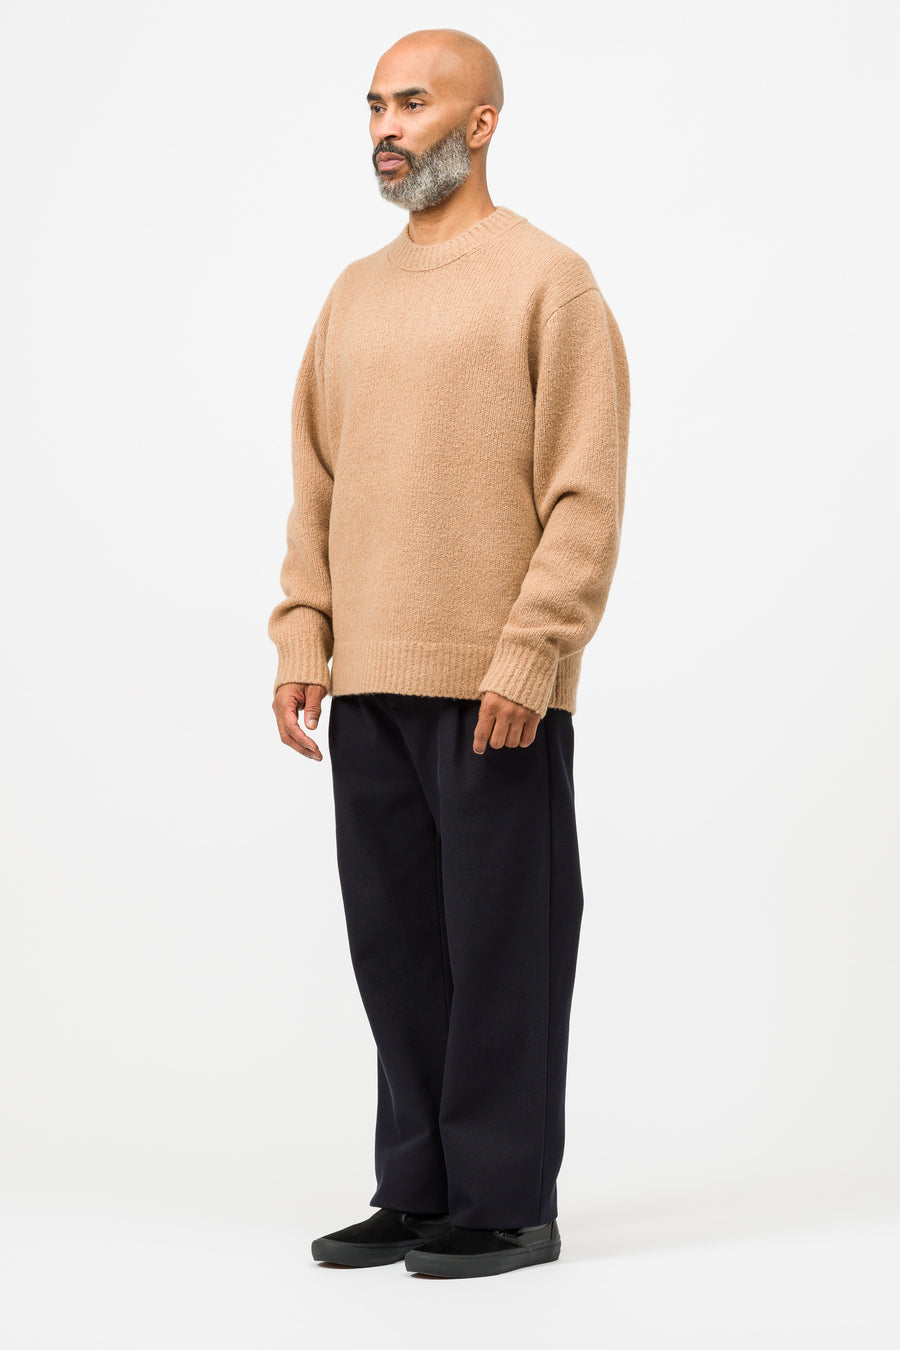 Acne Studios Kael Cashmix Knit Sweater in Light Brown - Notre